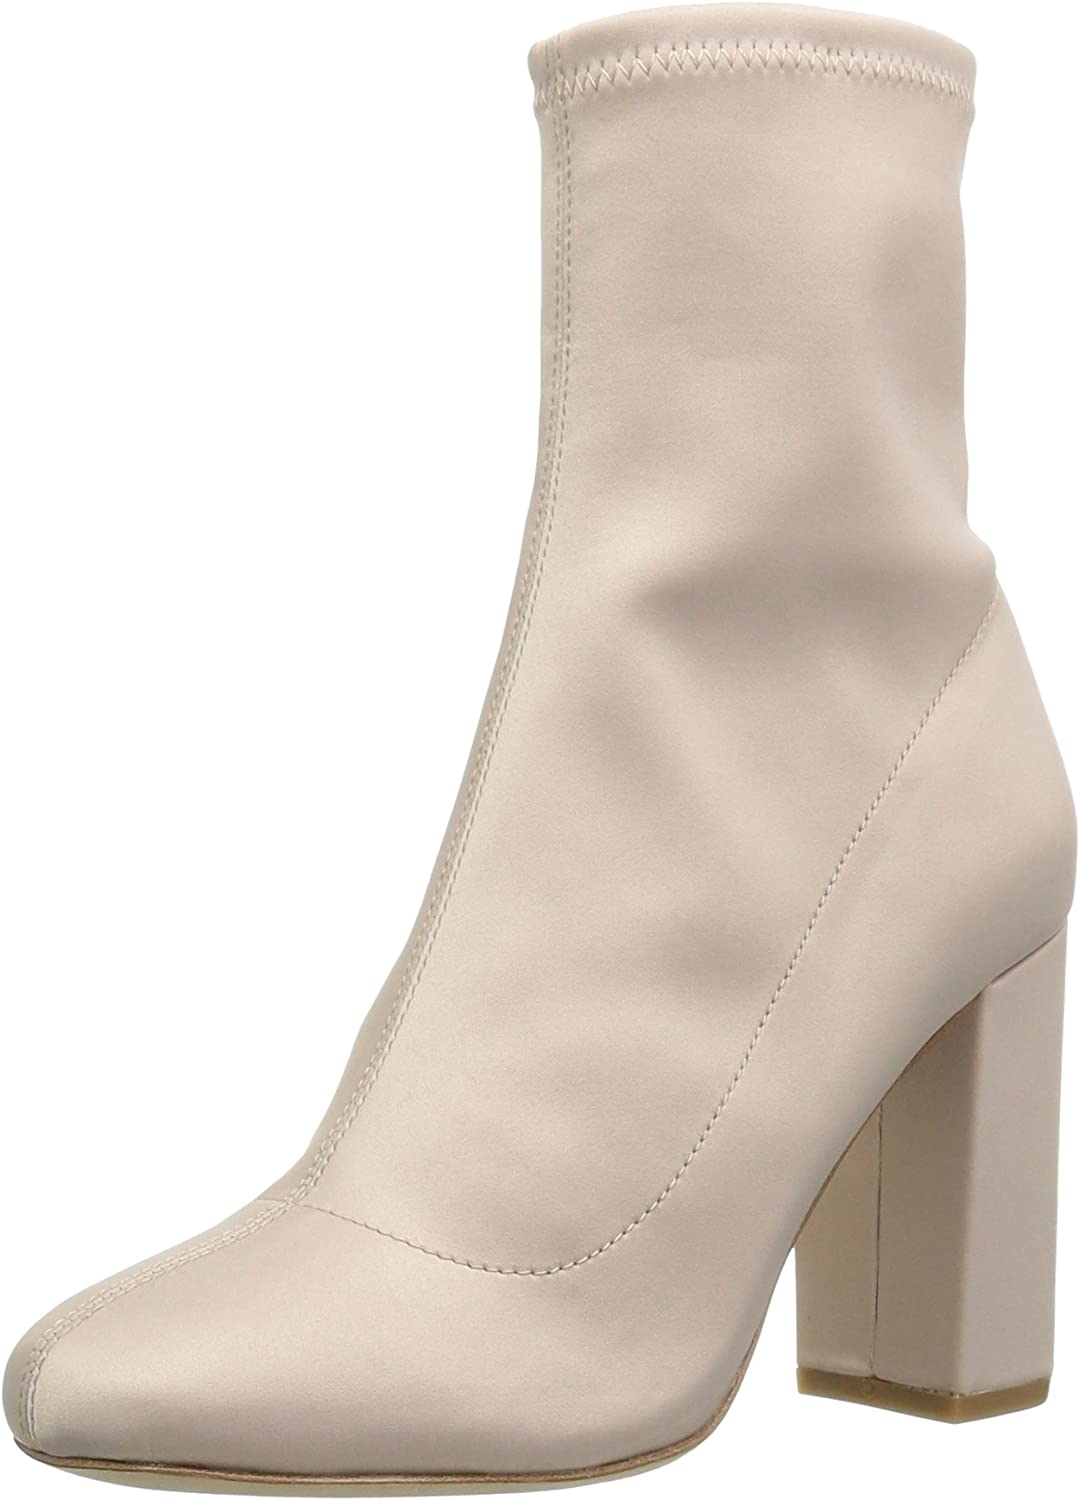 Joie Women's Sabriyya Fashion Boot